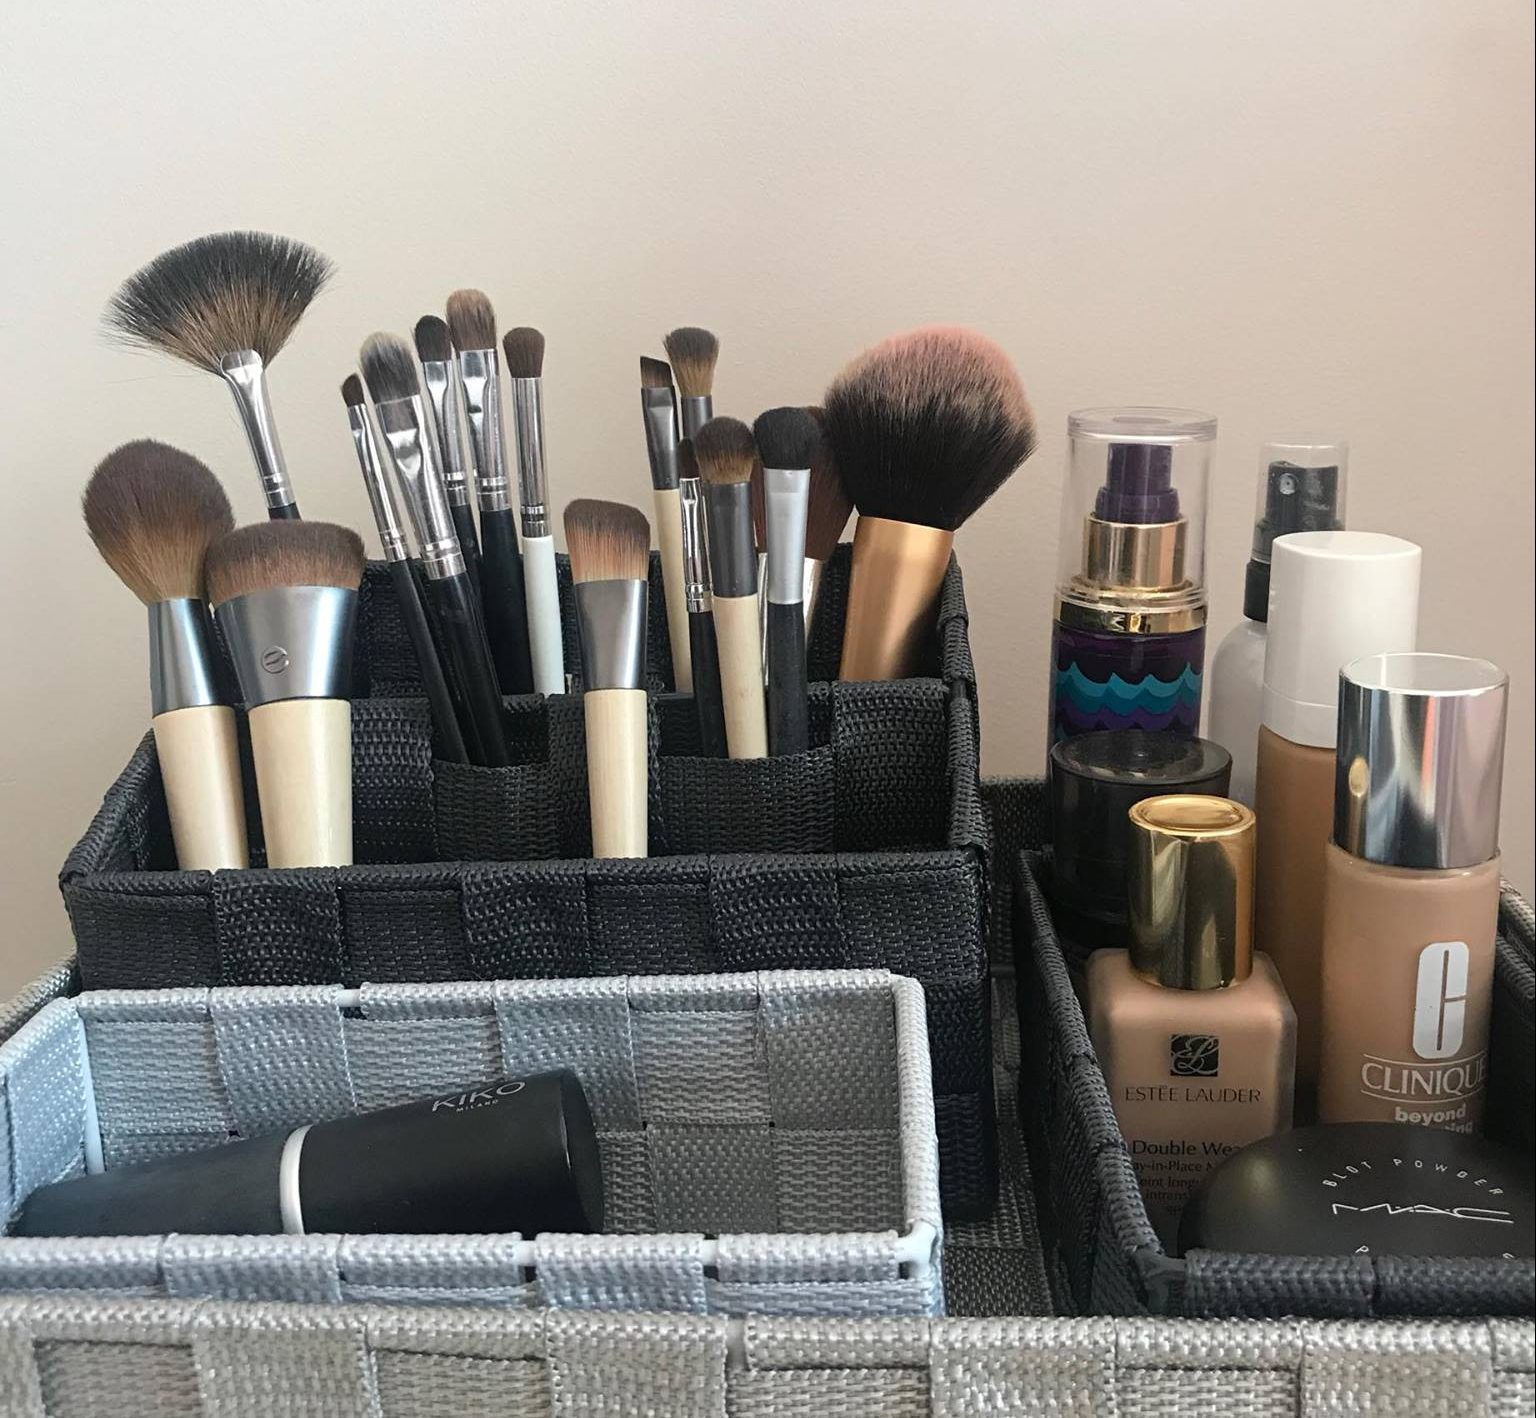 Whats in your beauty bag